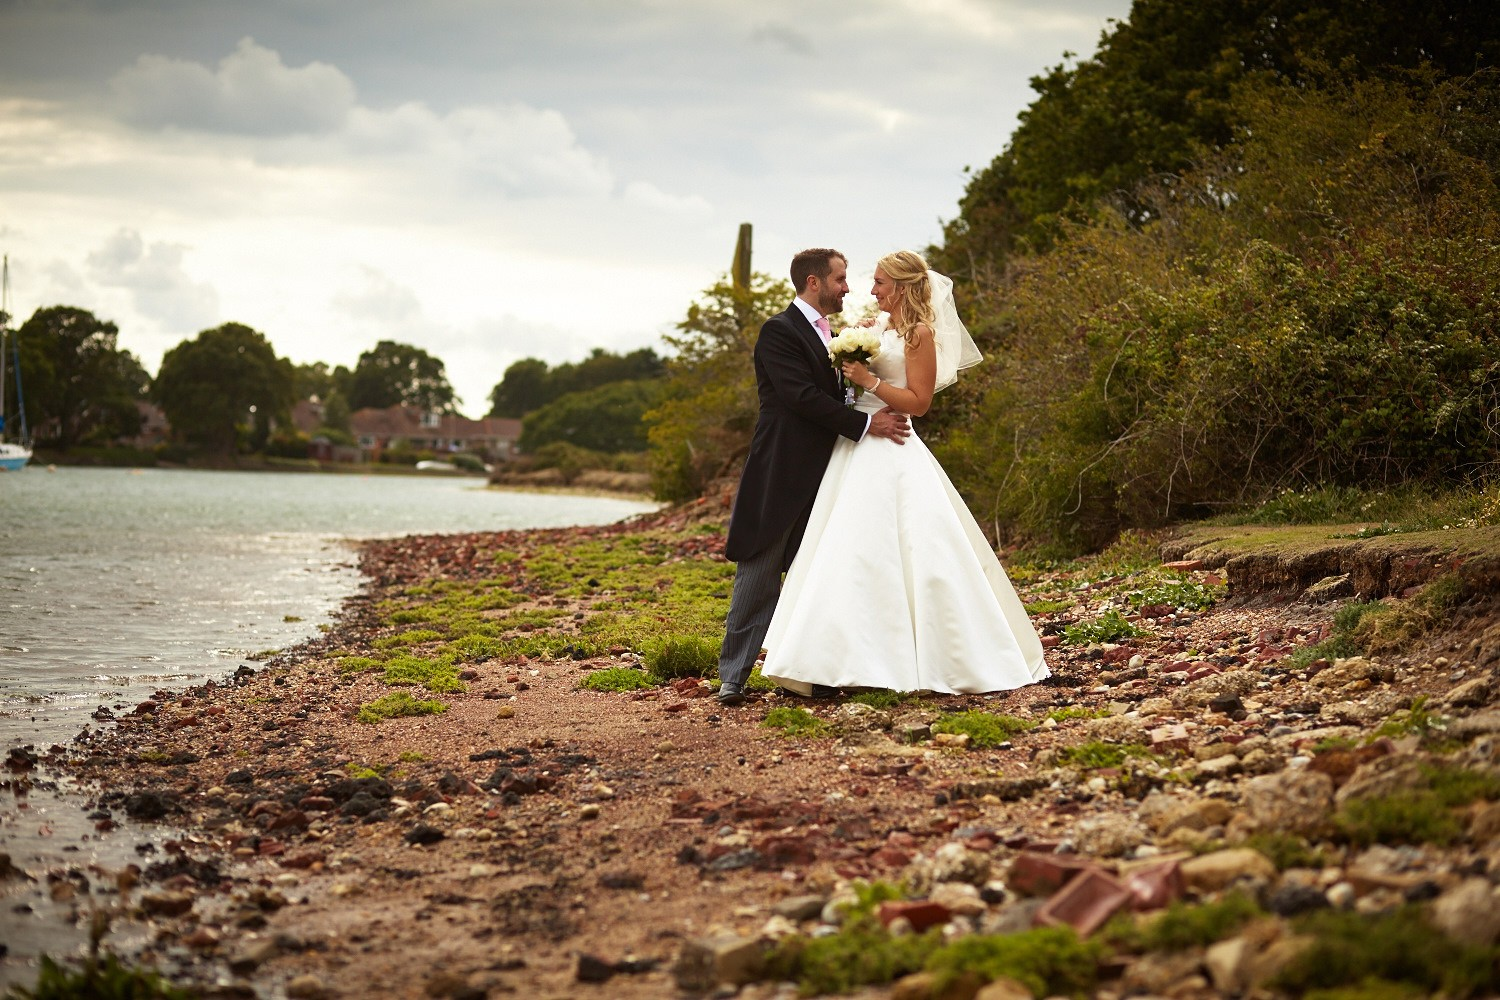 aperture priority the best shooting mode for wedding With best aperture for wedding photography